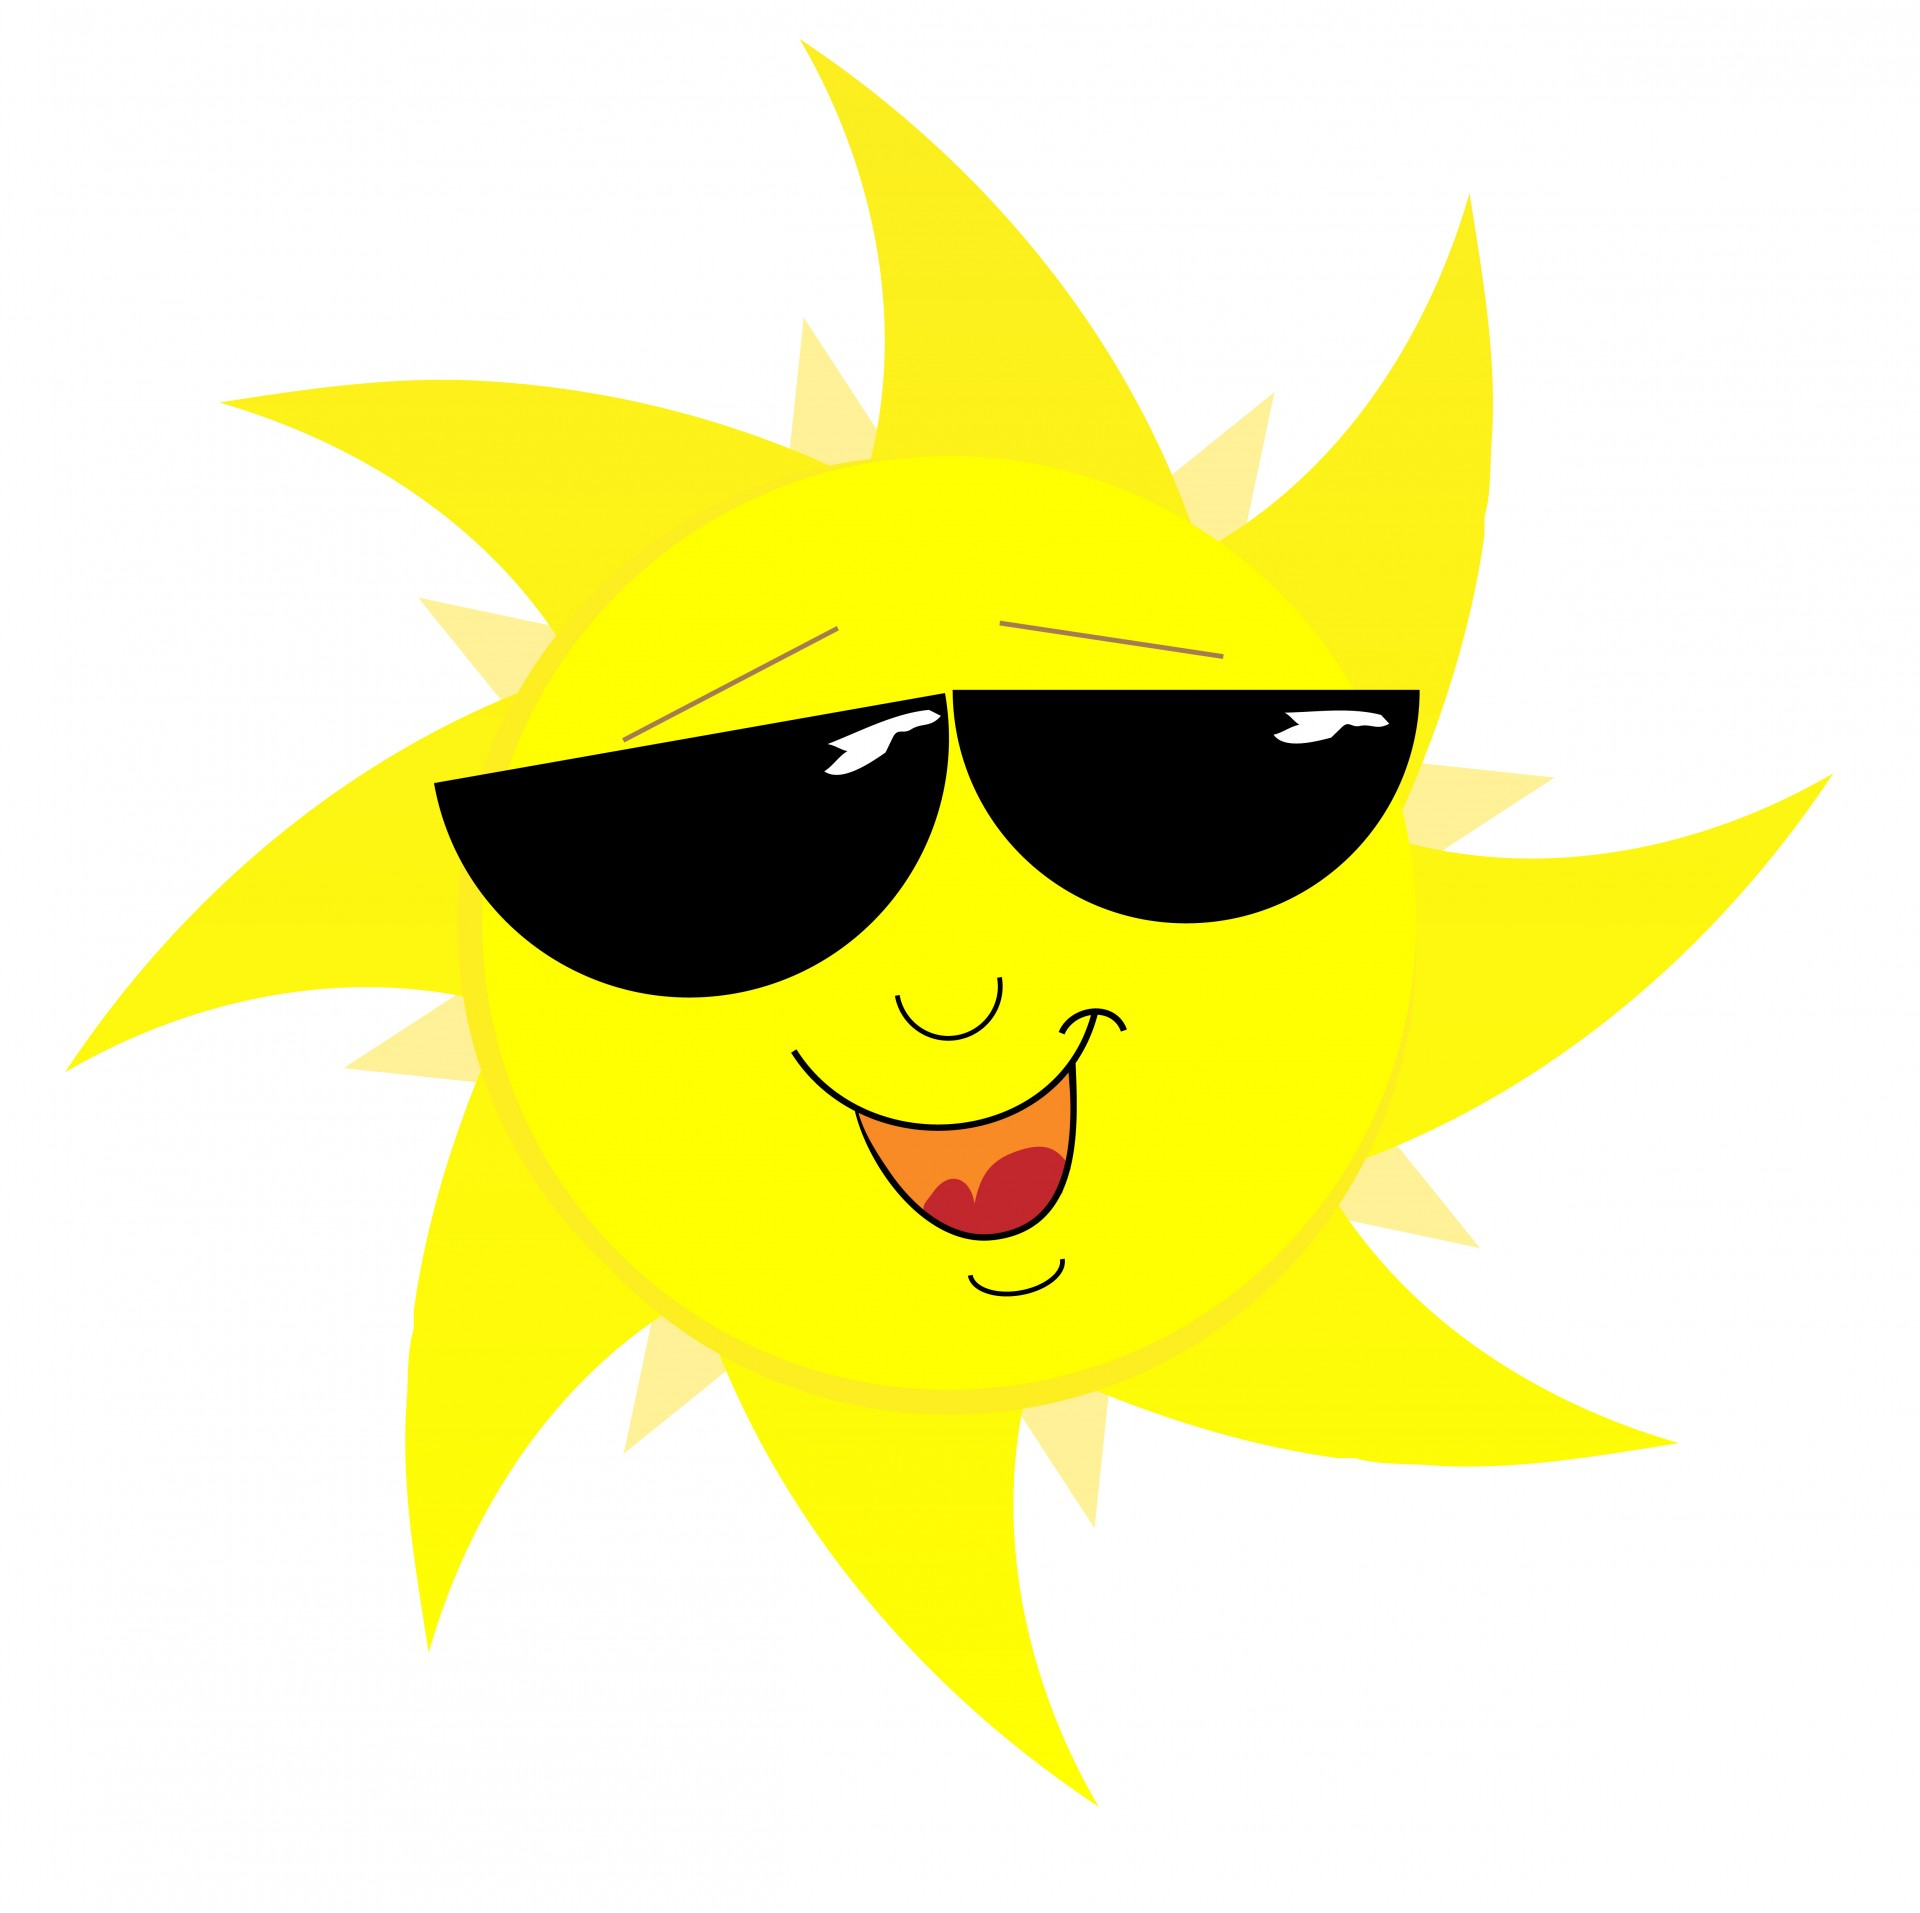 1920x1913 Smiling Sun Face In Sunglasses Free Stock Photo